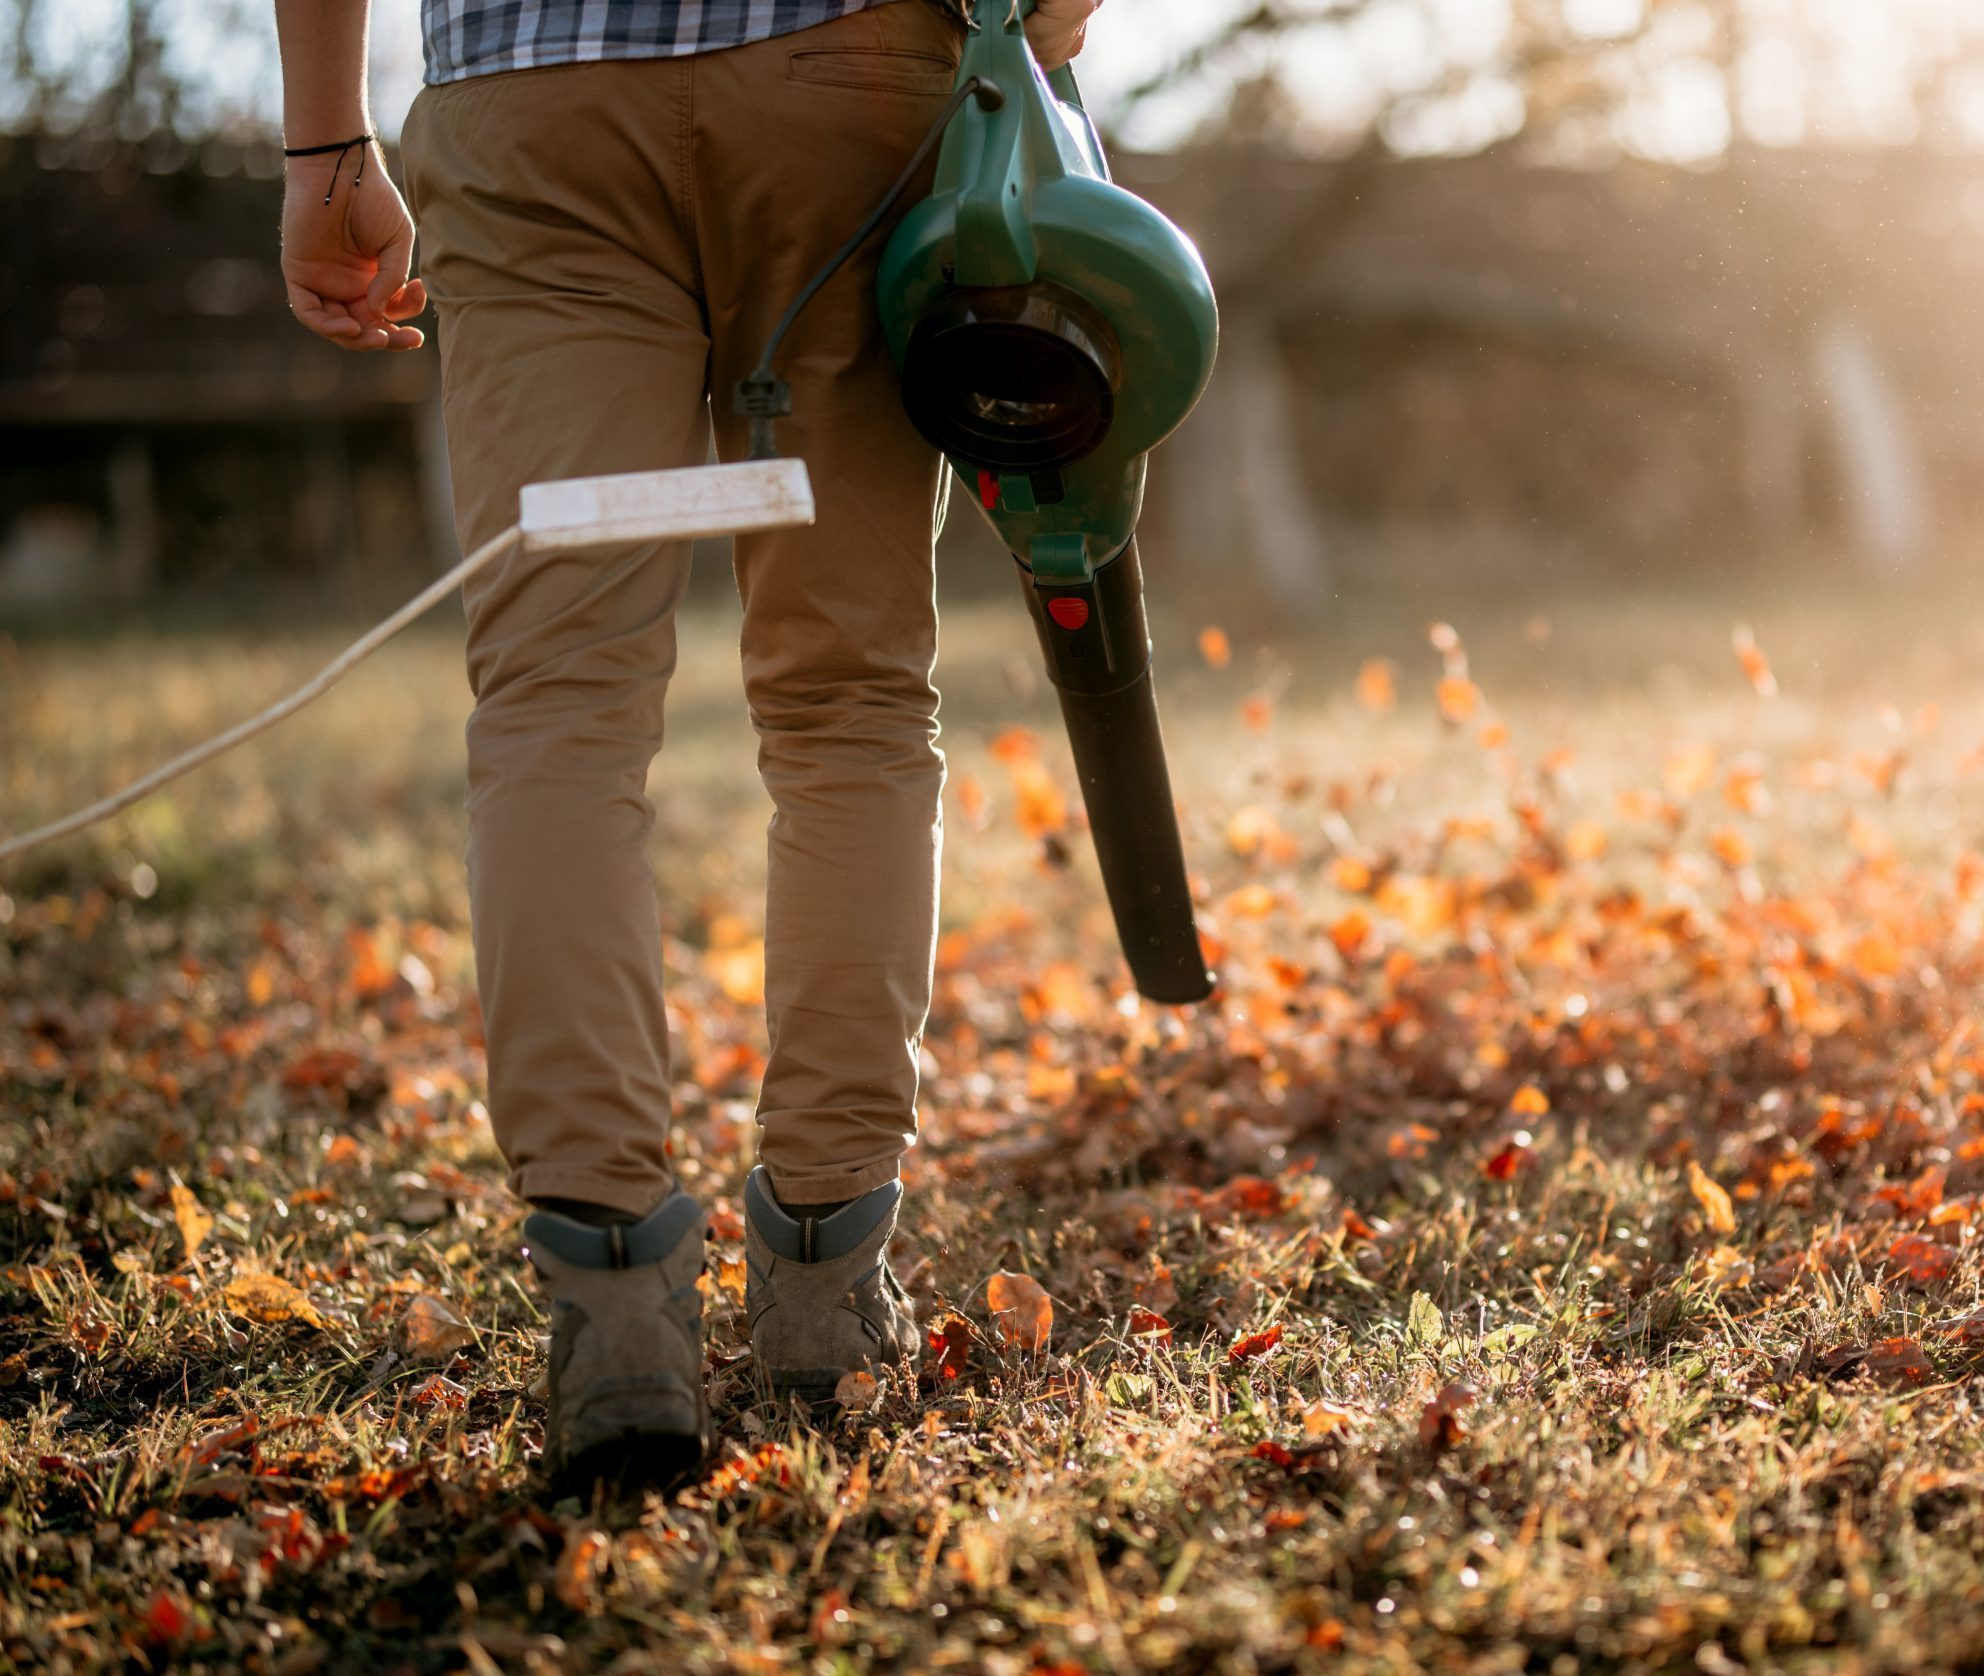 Man Blowing Leaves With Leaf Blower During Autumn Cleaning